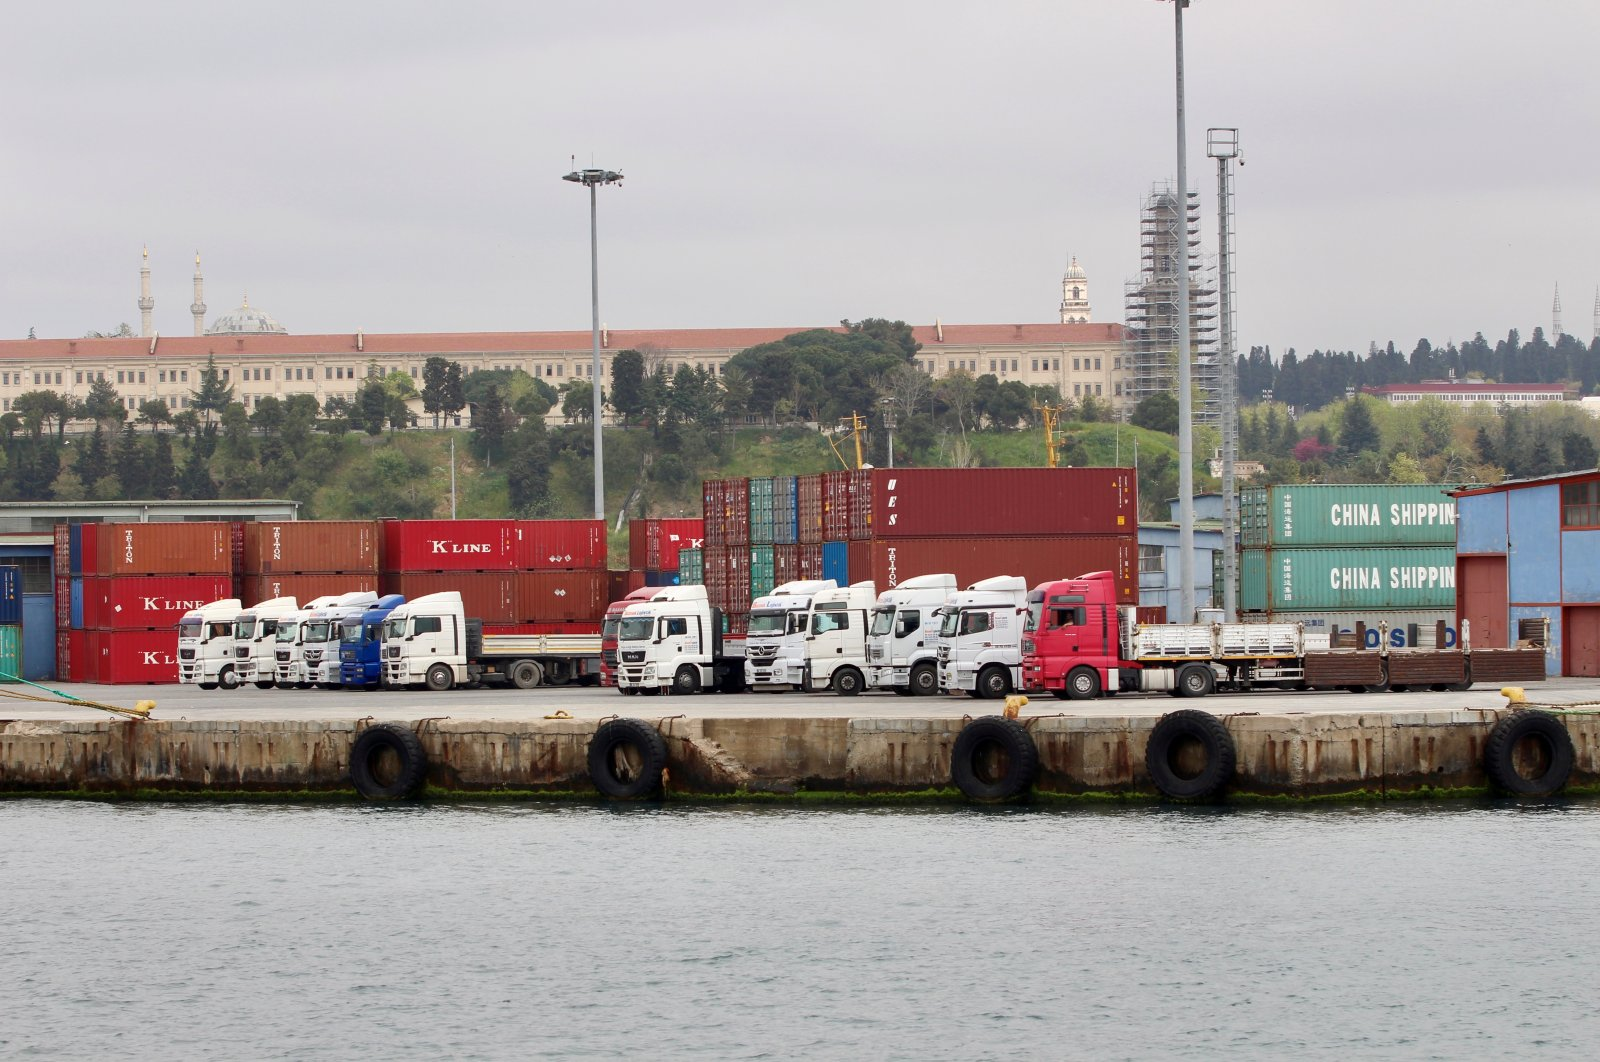 Trucks and shipping containers are pictured at Haydarpaşa Port in Istanbul, Turkey, April 18, 2018. (Reuters Photo)